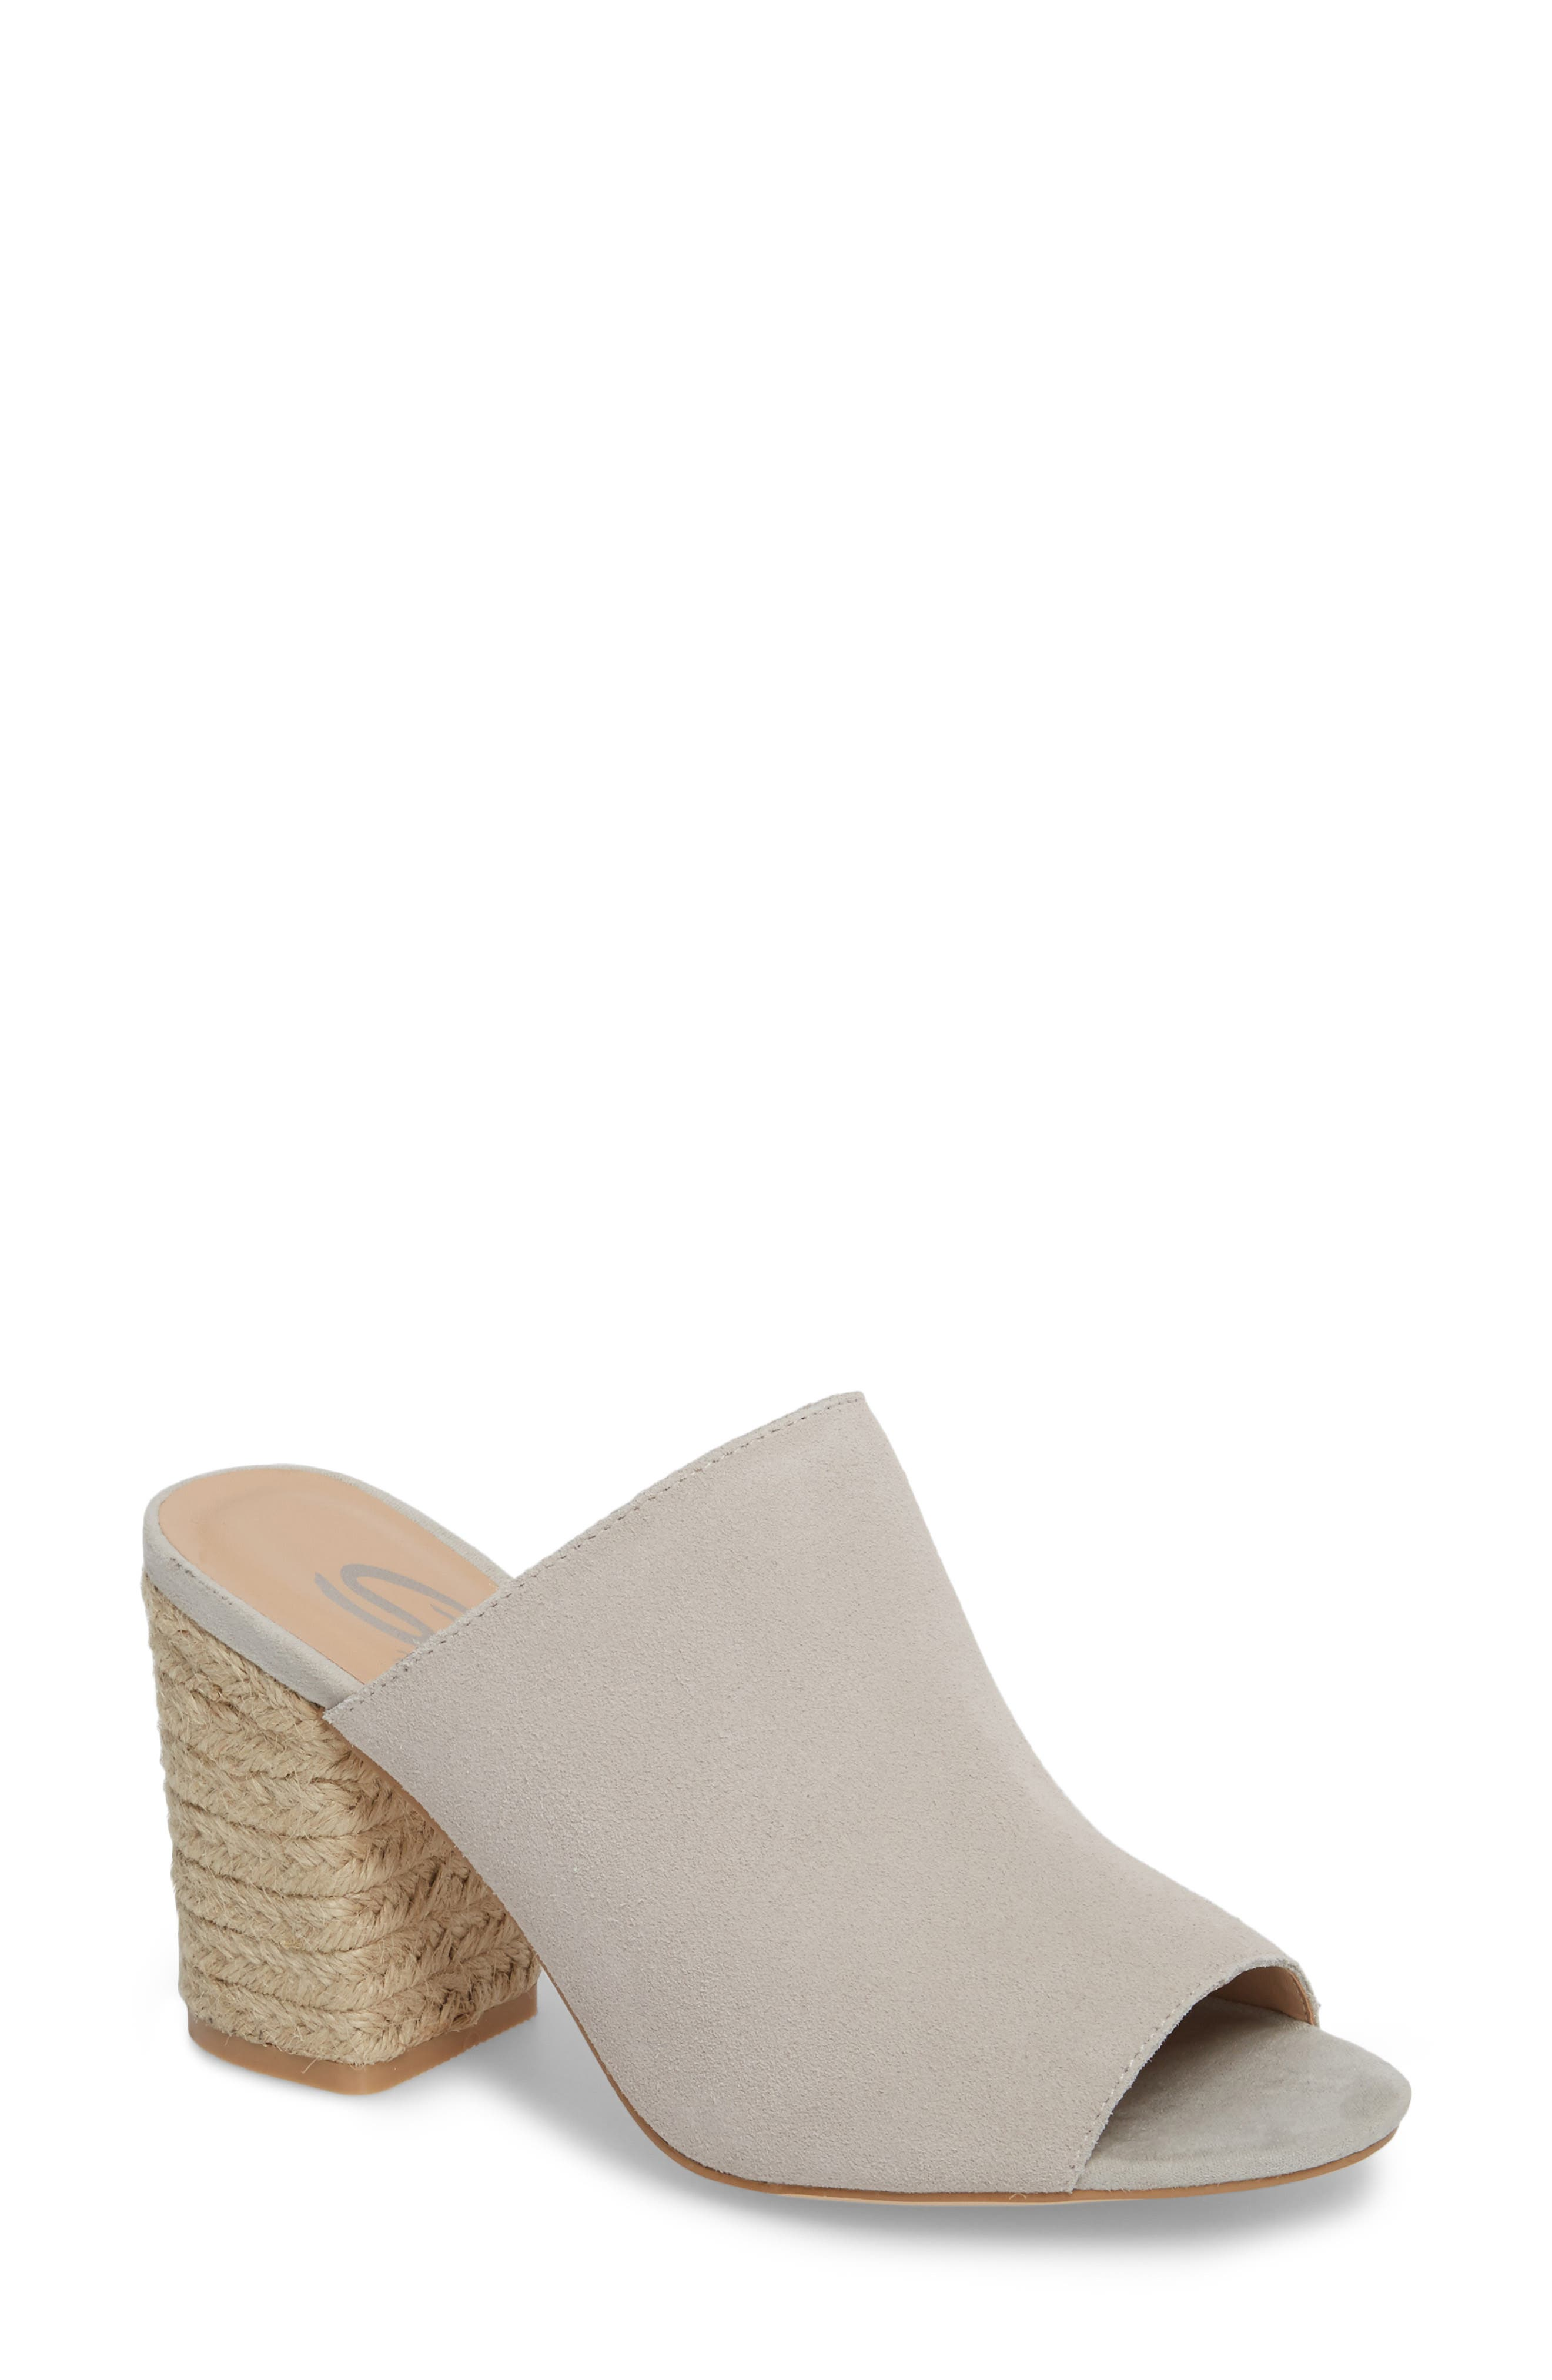 Helena Sandal,                             Main thumbnail 1, color,                             Ice Suede/ Leather